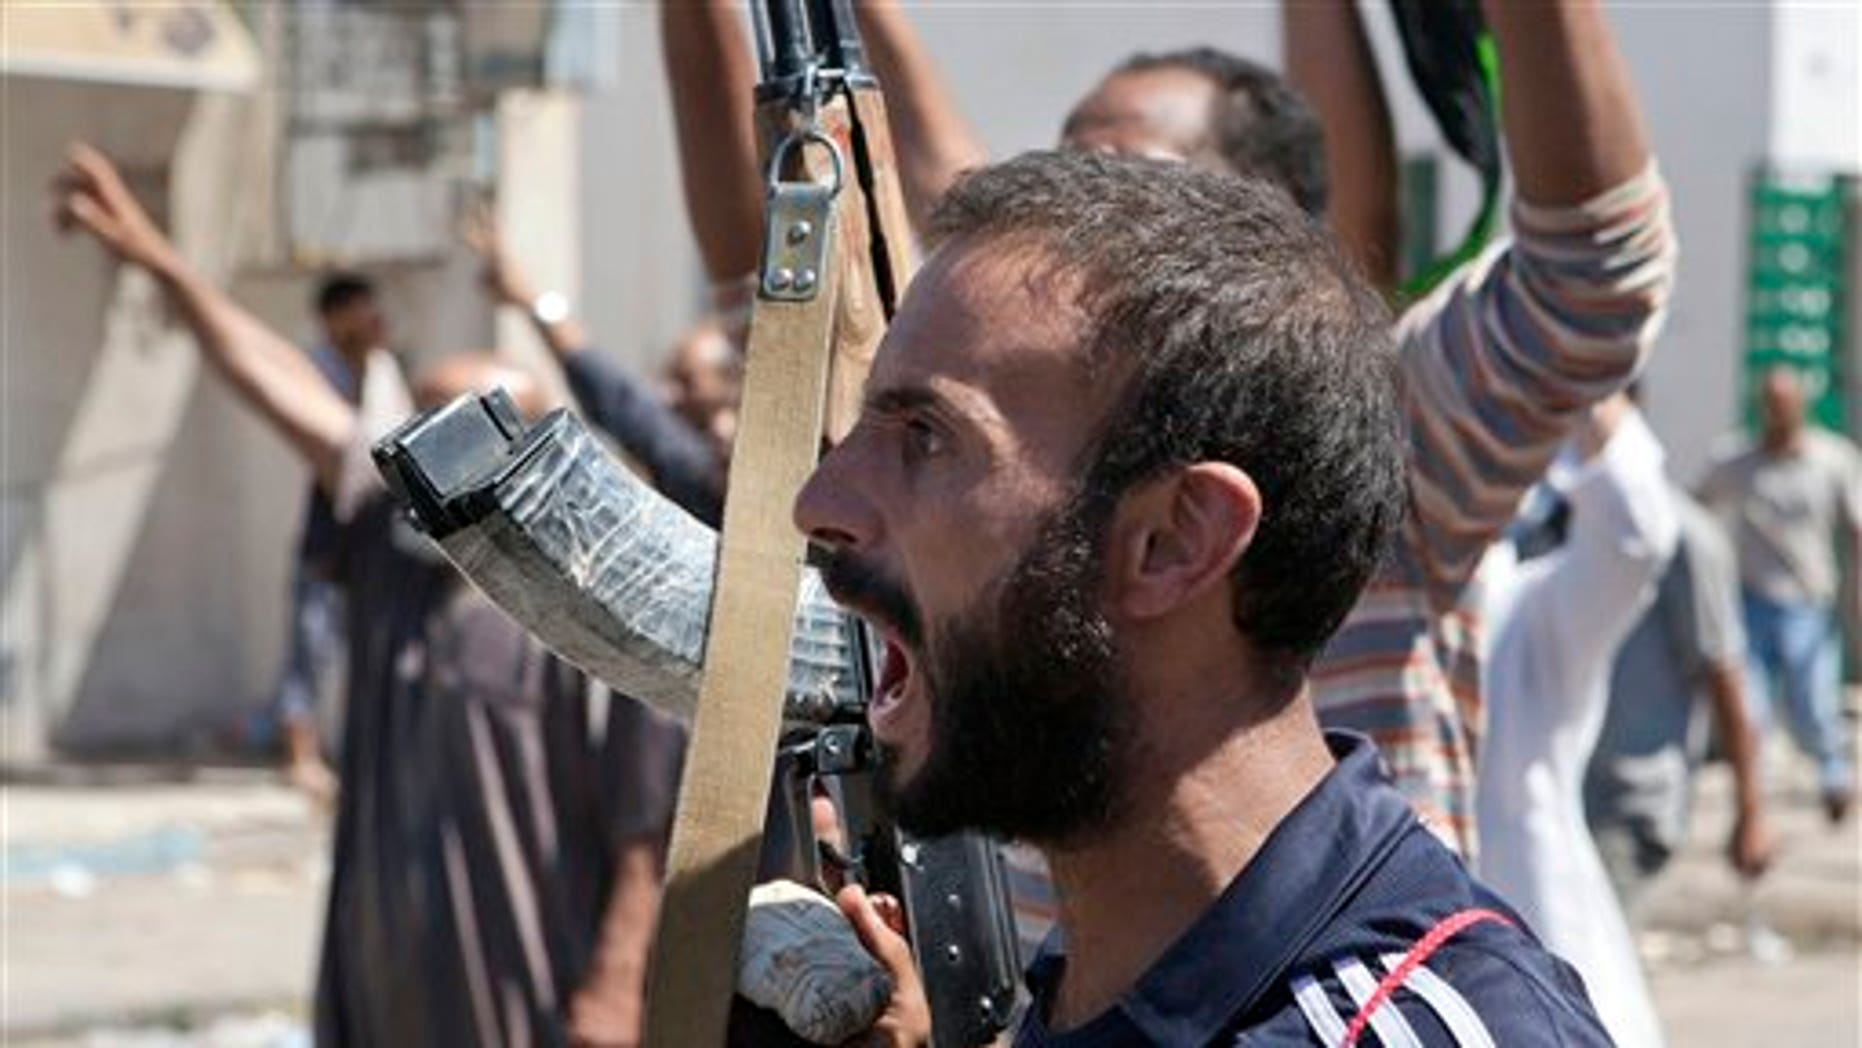 Aug. 14: In this photo, a Libyan rebel fighter in Zawiya, western Libya, reacts to the news that the city of Surman, an important strategic point, is now under the control of the rebel forces.  Libyan rebels have claimed they were trying to cut off two key supply routes to Muammar al-Qaddafi's stronghold in Tripoli after capturing more towns in the west of the country.